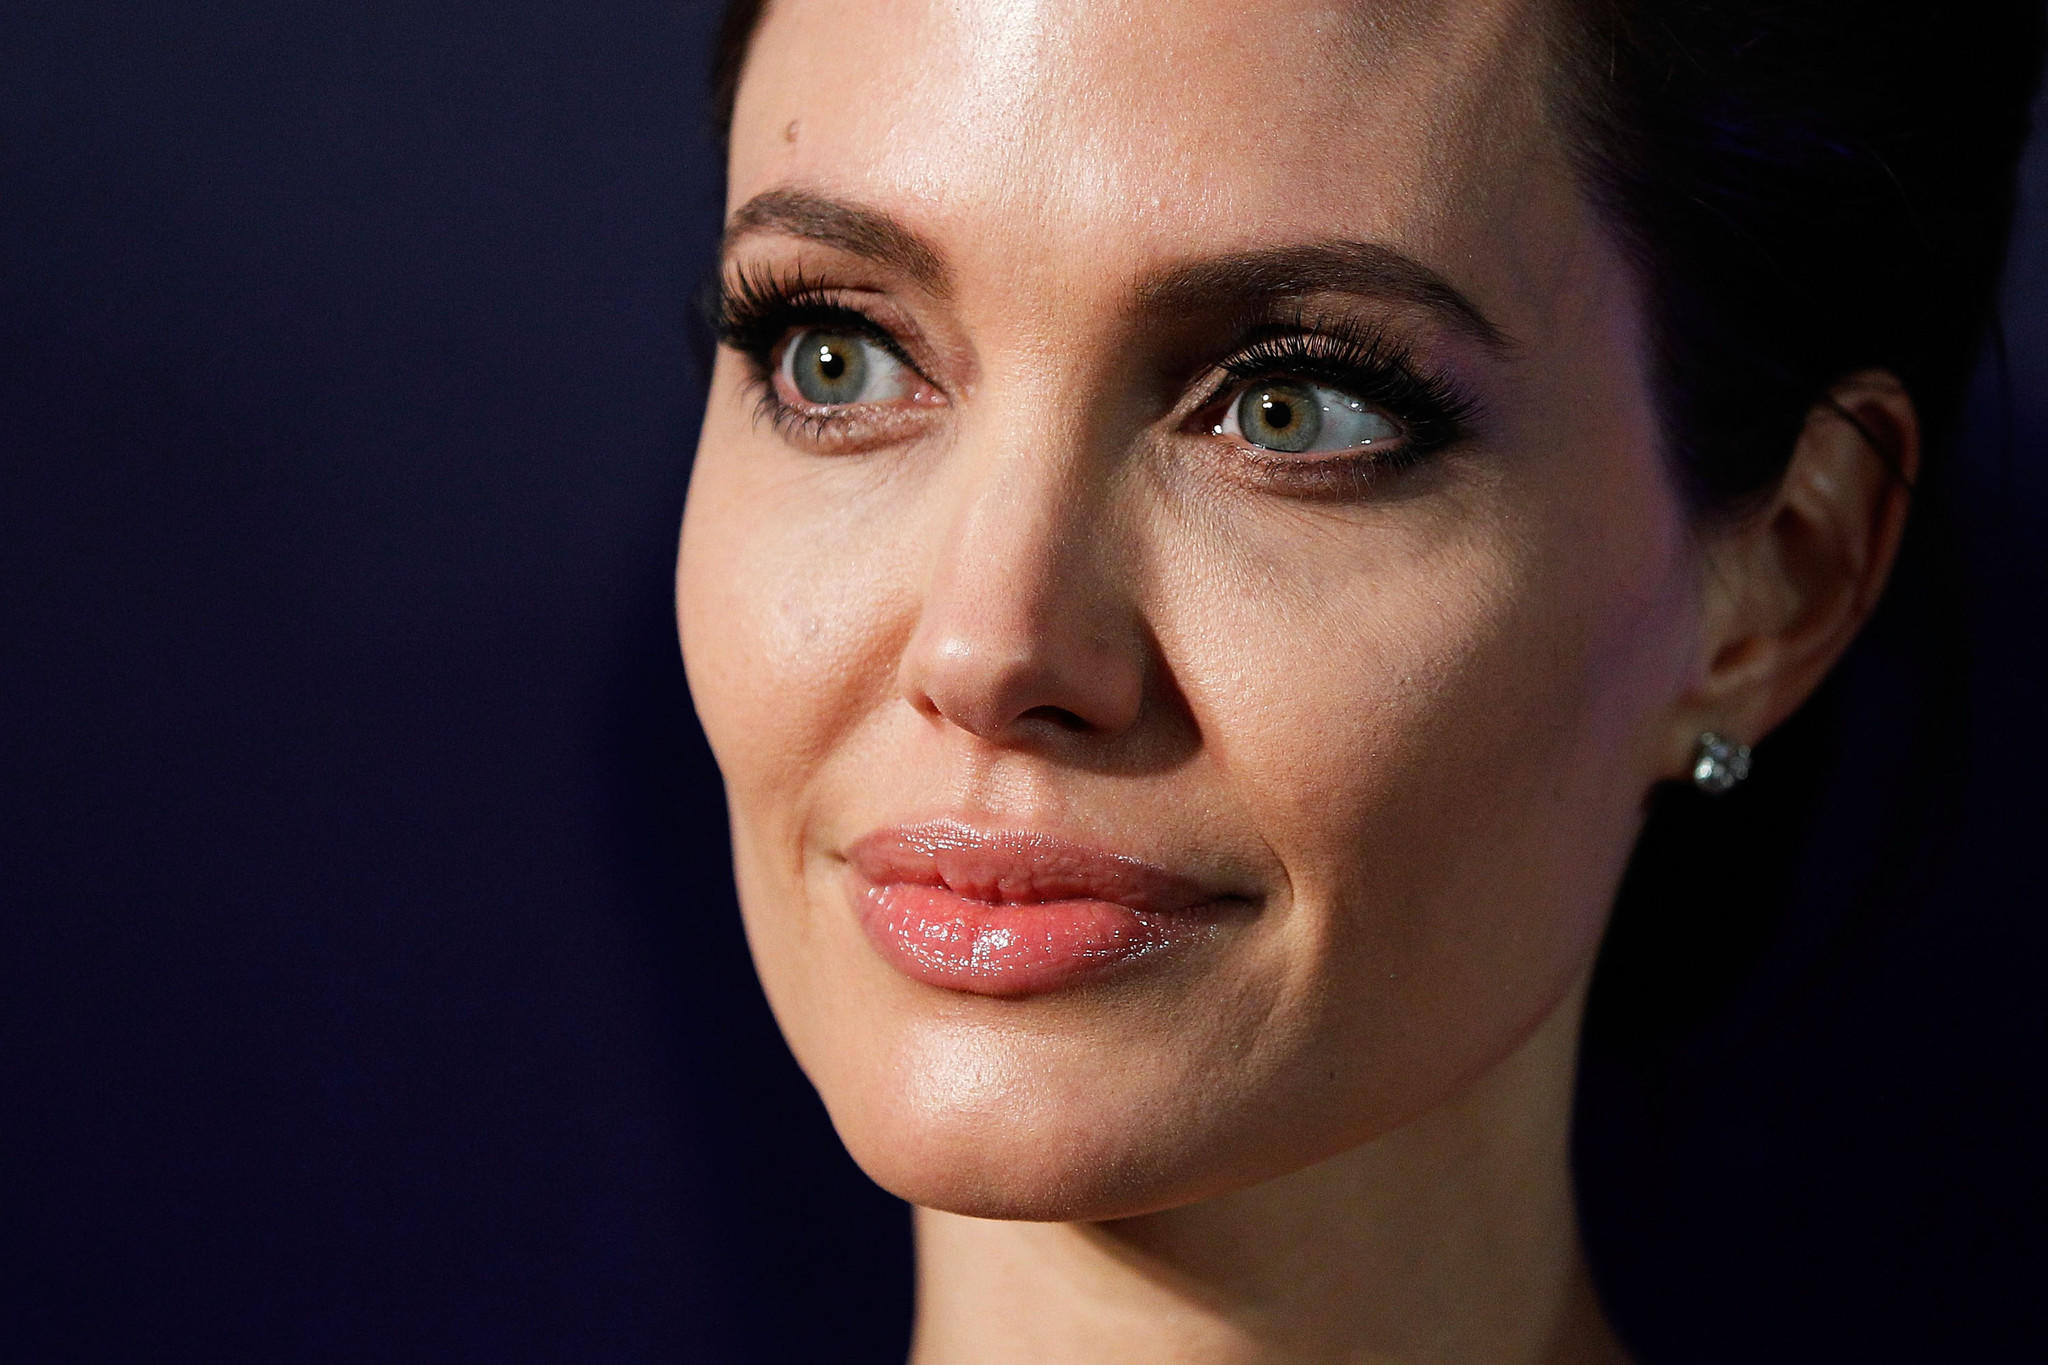 Vanity Fair defends Angelina Jolie story about 'disturbing' game